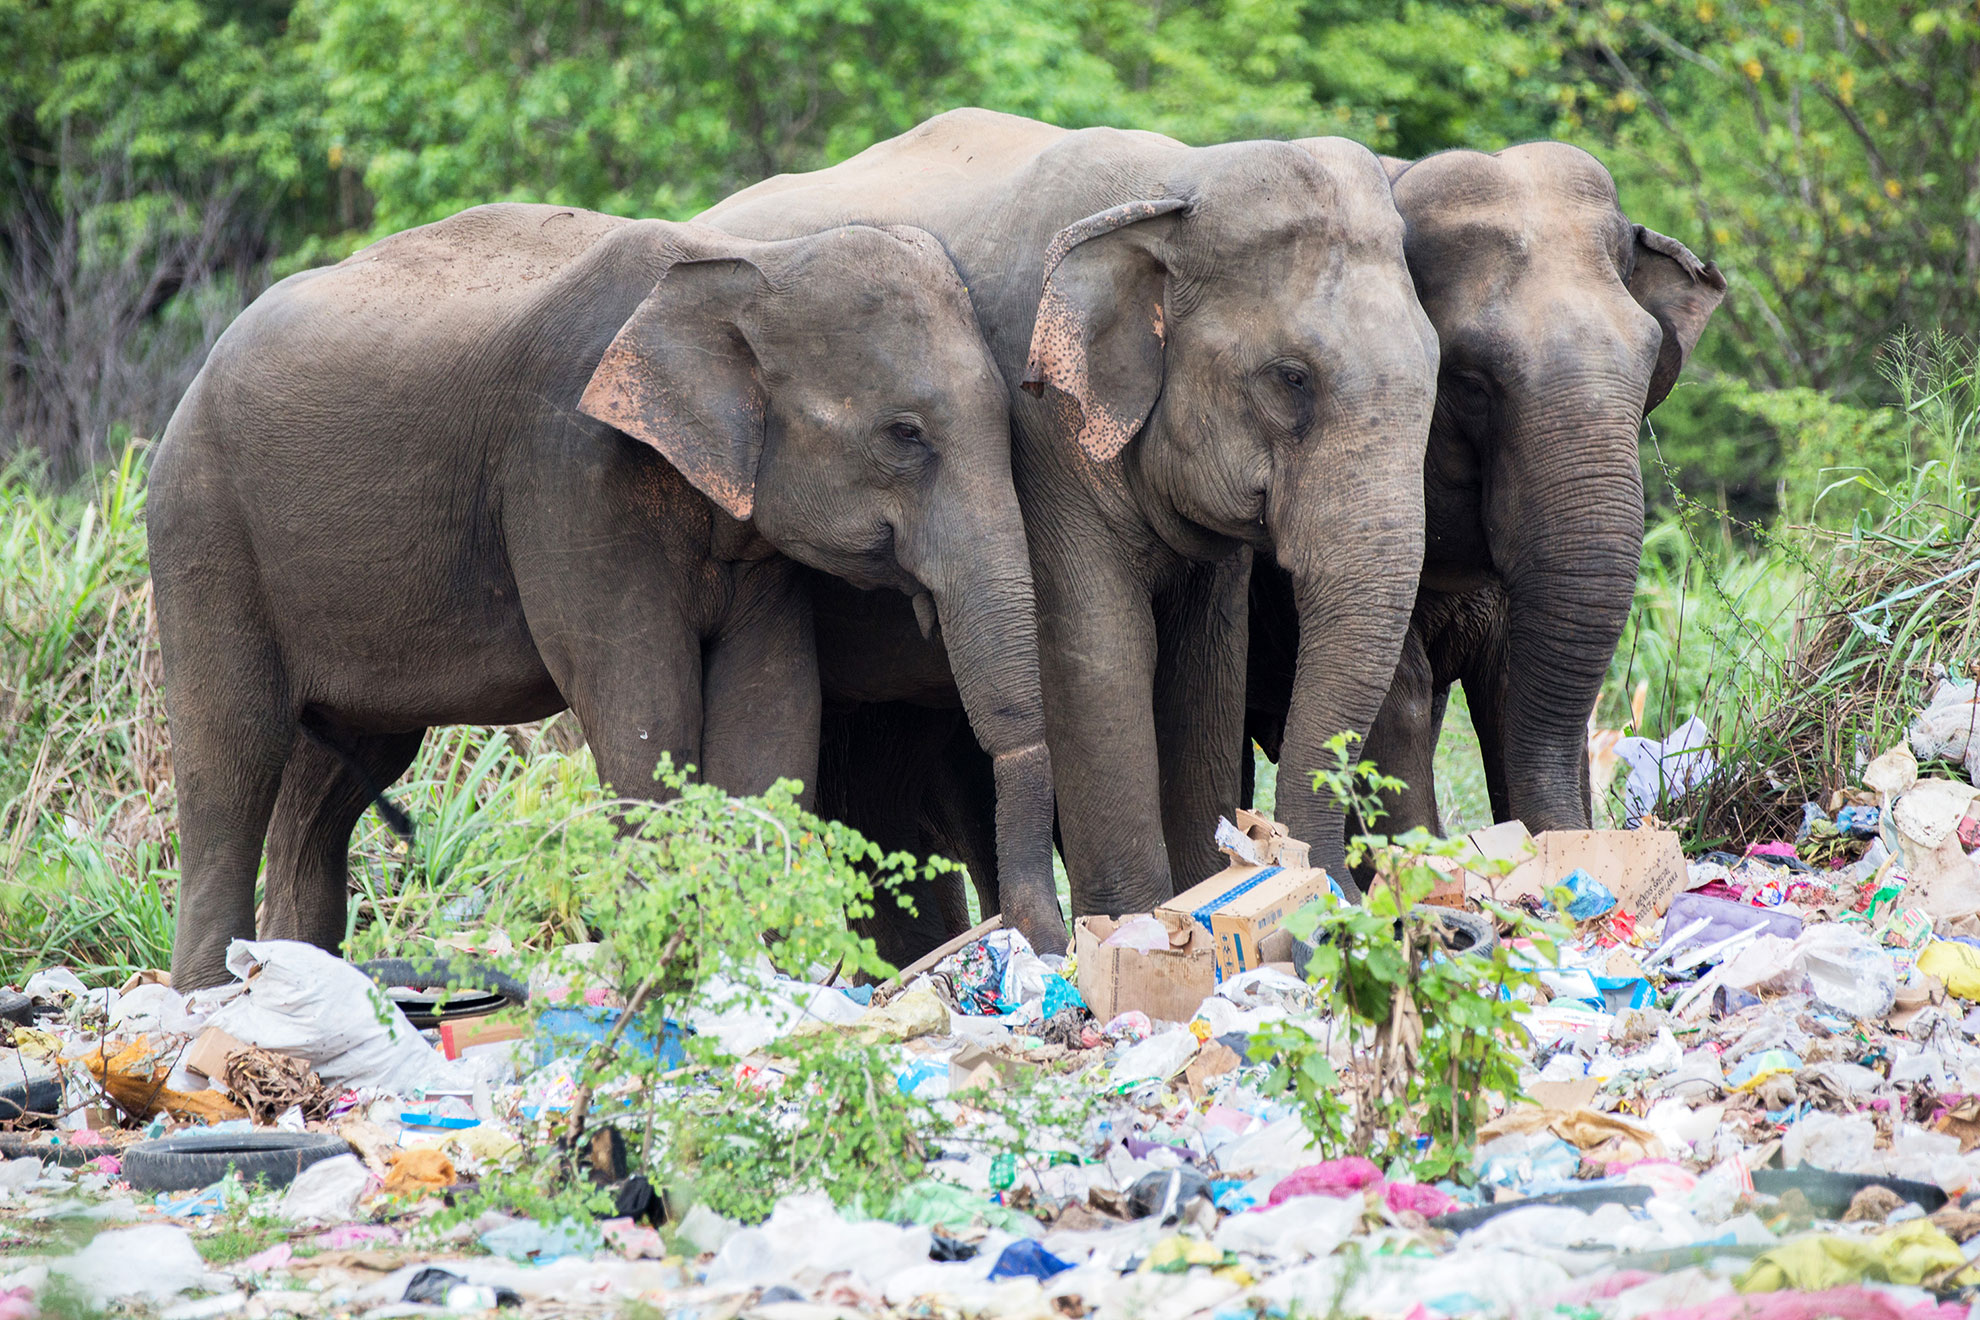 human elephant conflict The human-elephant conflict has existed since people started invading the habitats of elephants causing them to invade the villages and areas where people live, in search of adequate food.